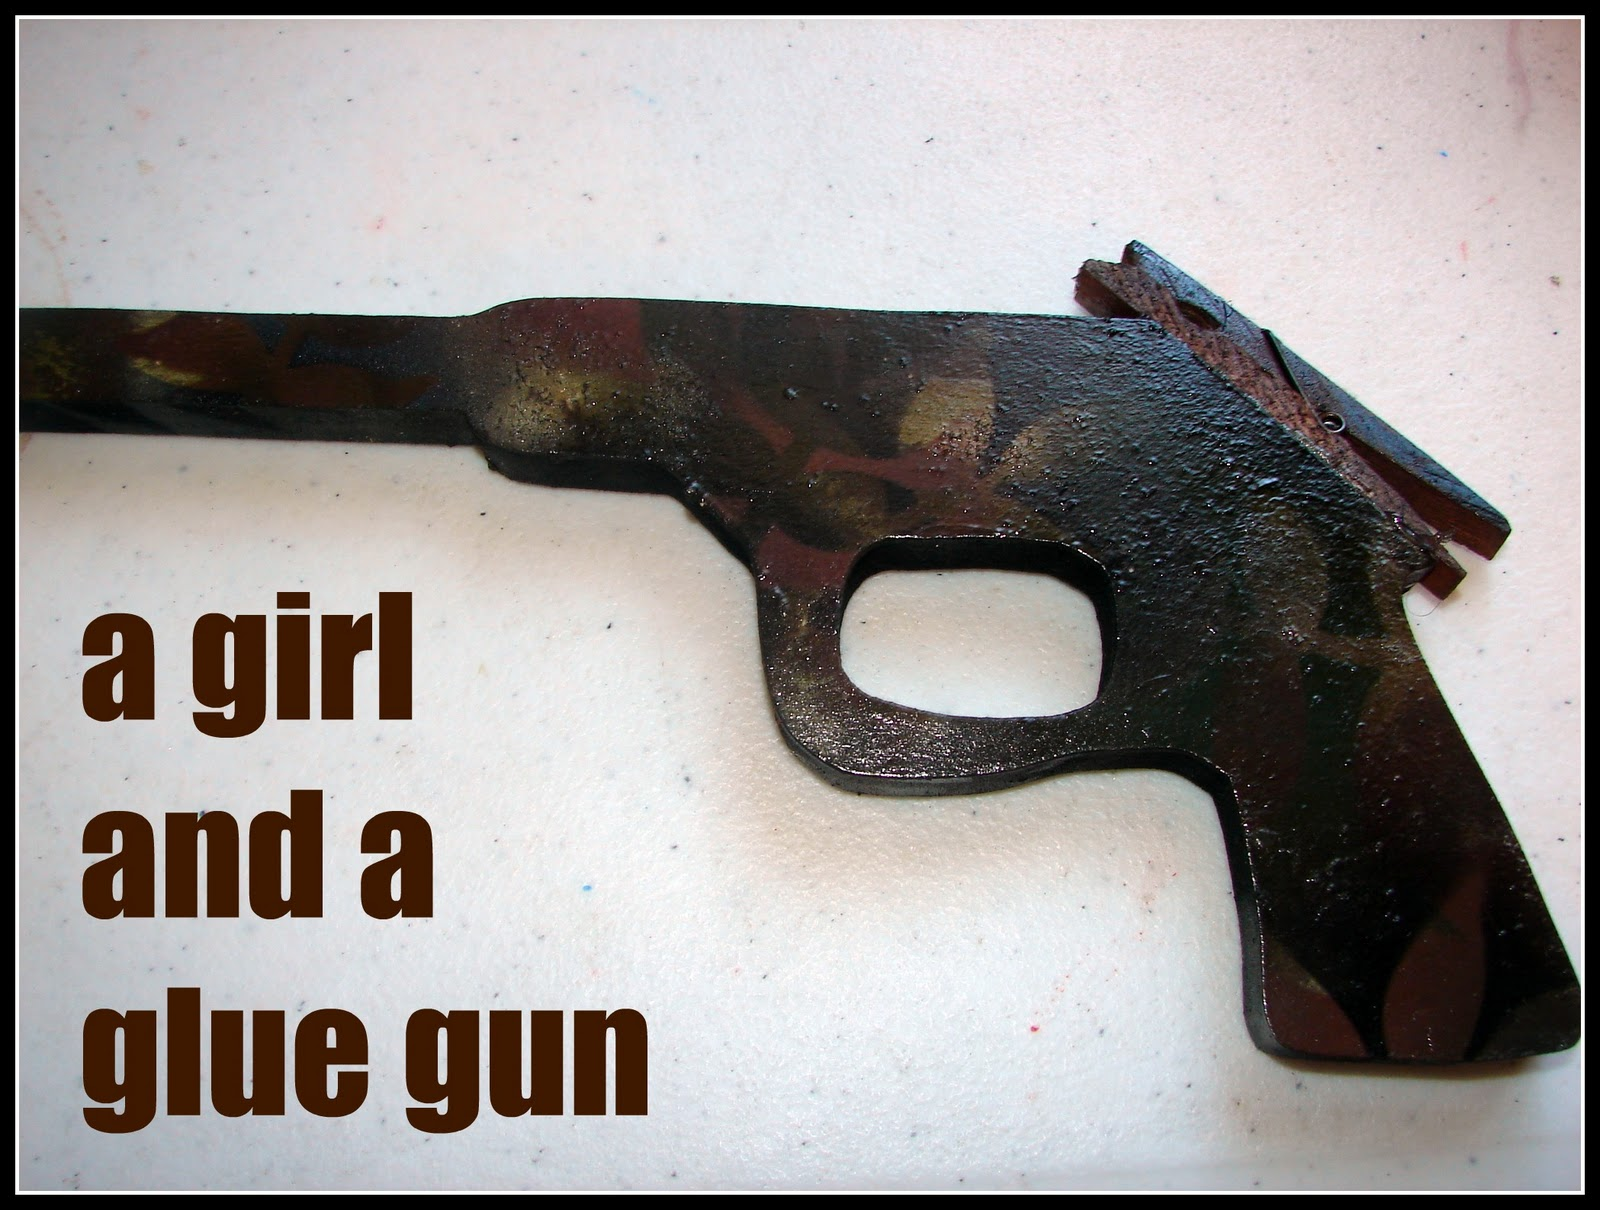 For boys ages 1-99 - A girl and a glue gun